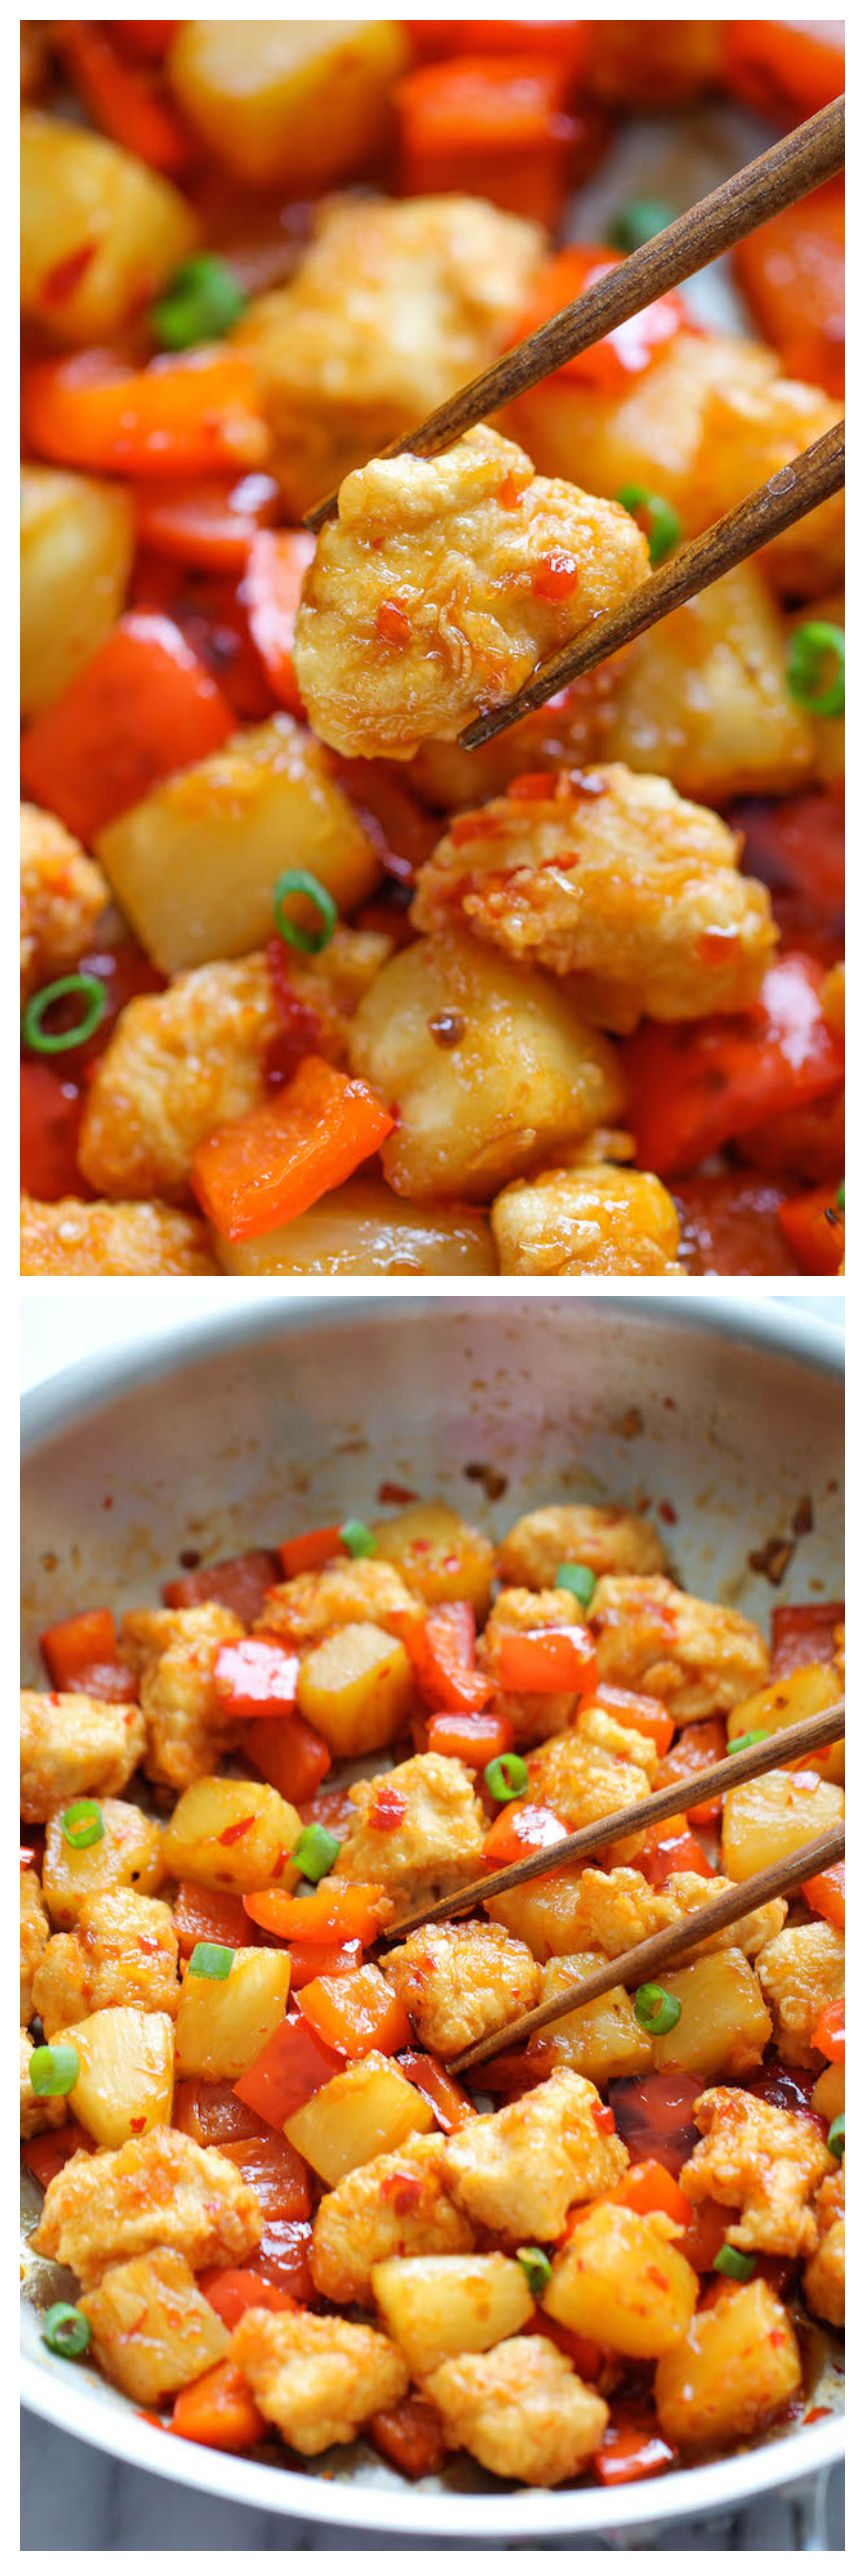 Receta de Panda Express Sweet Fire Chicken Copycat-1912